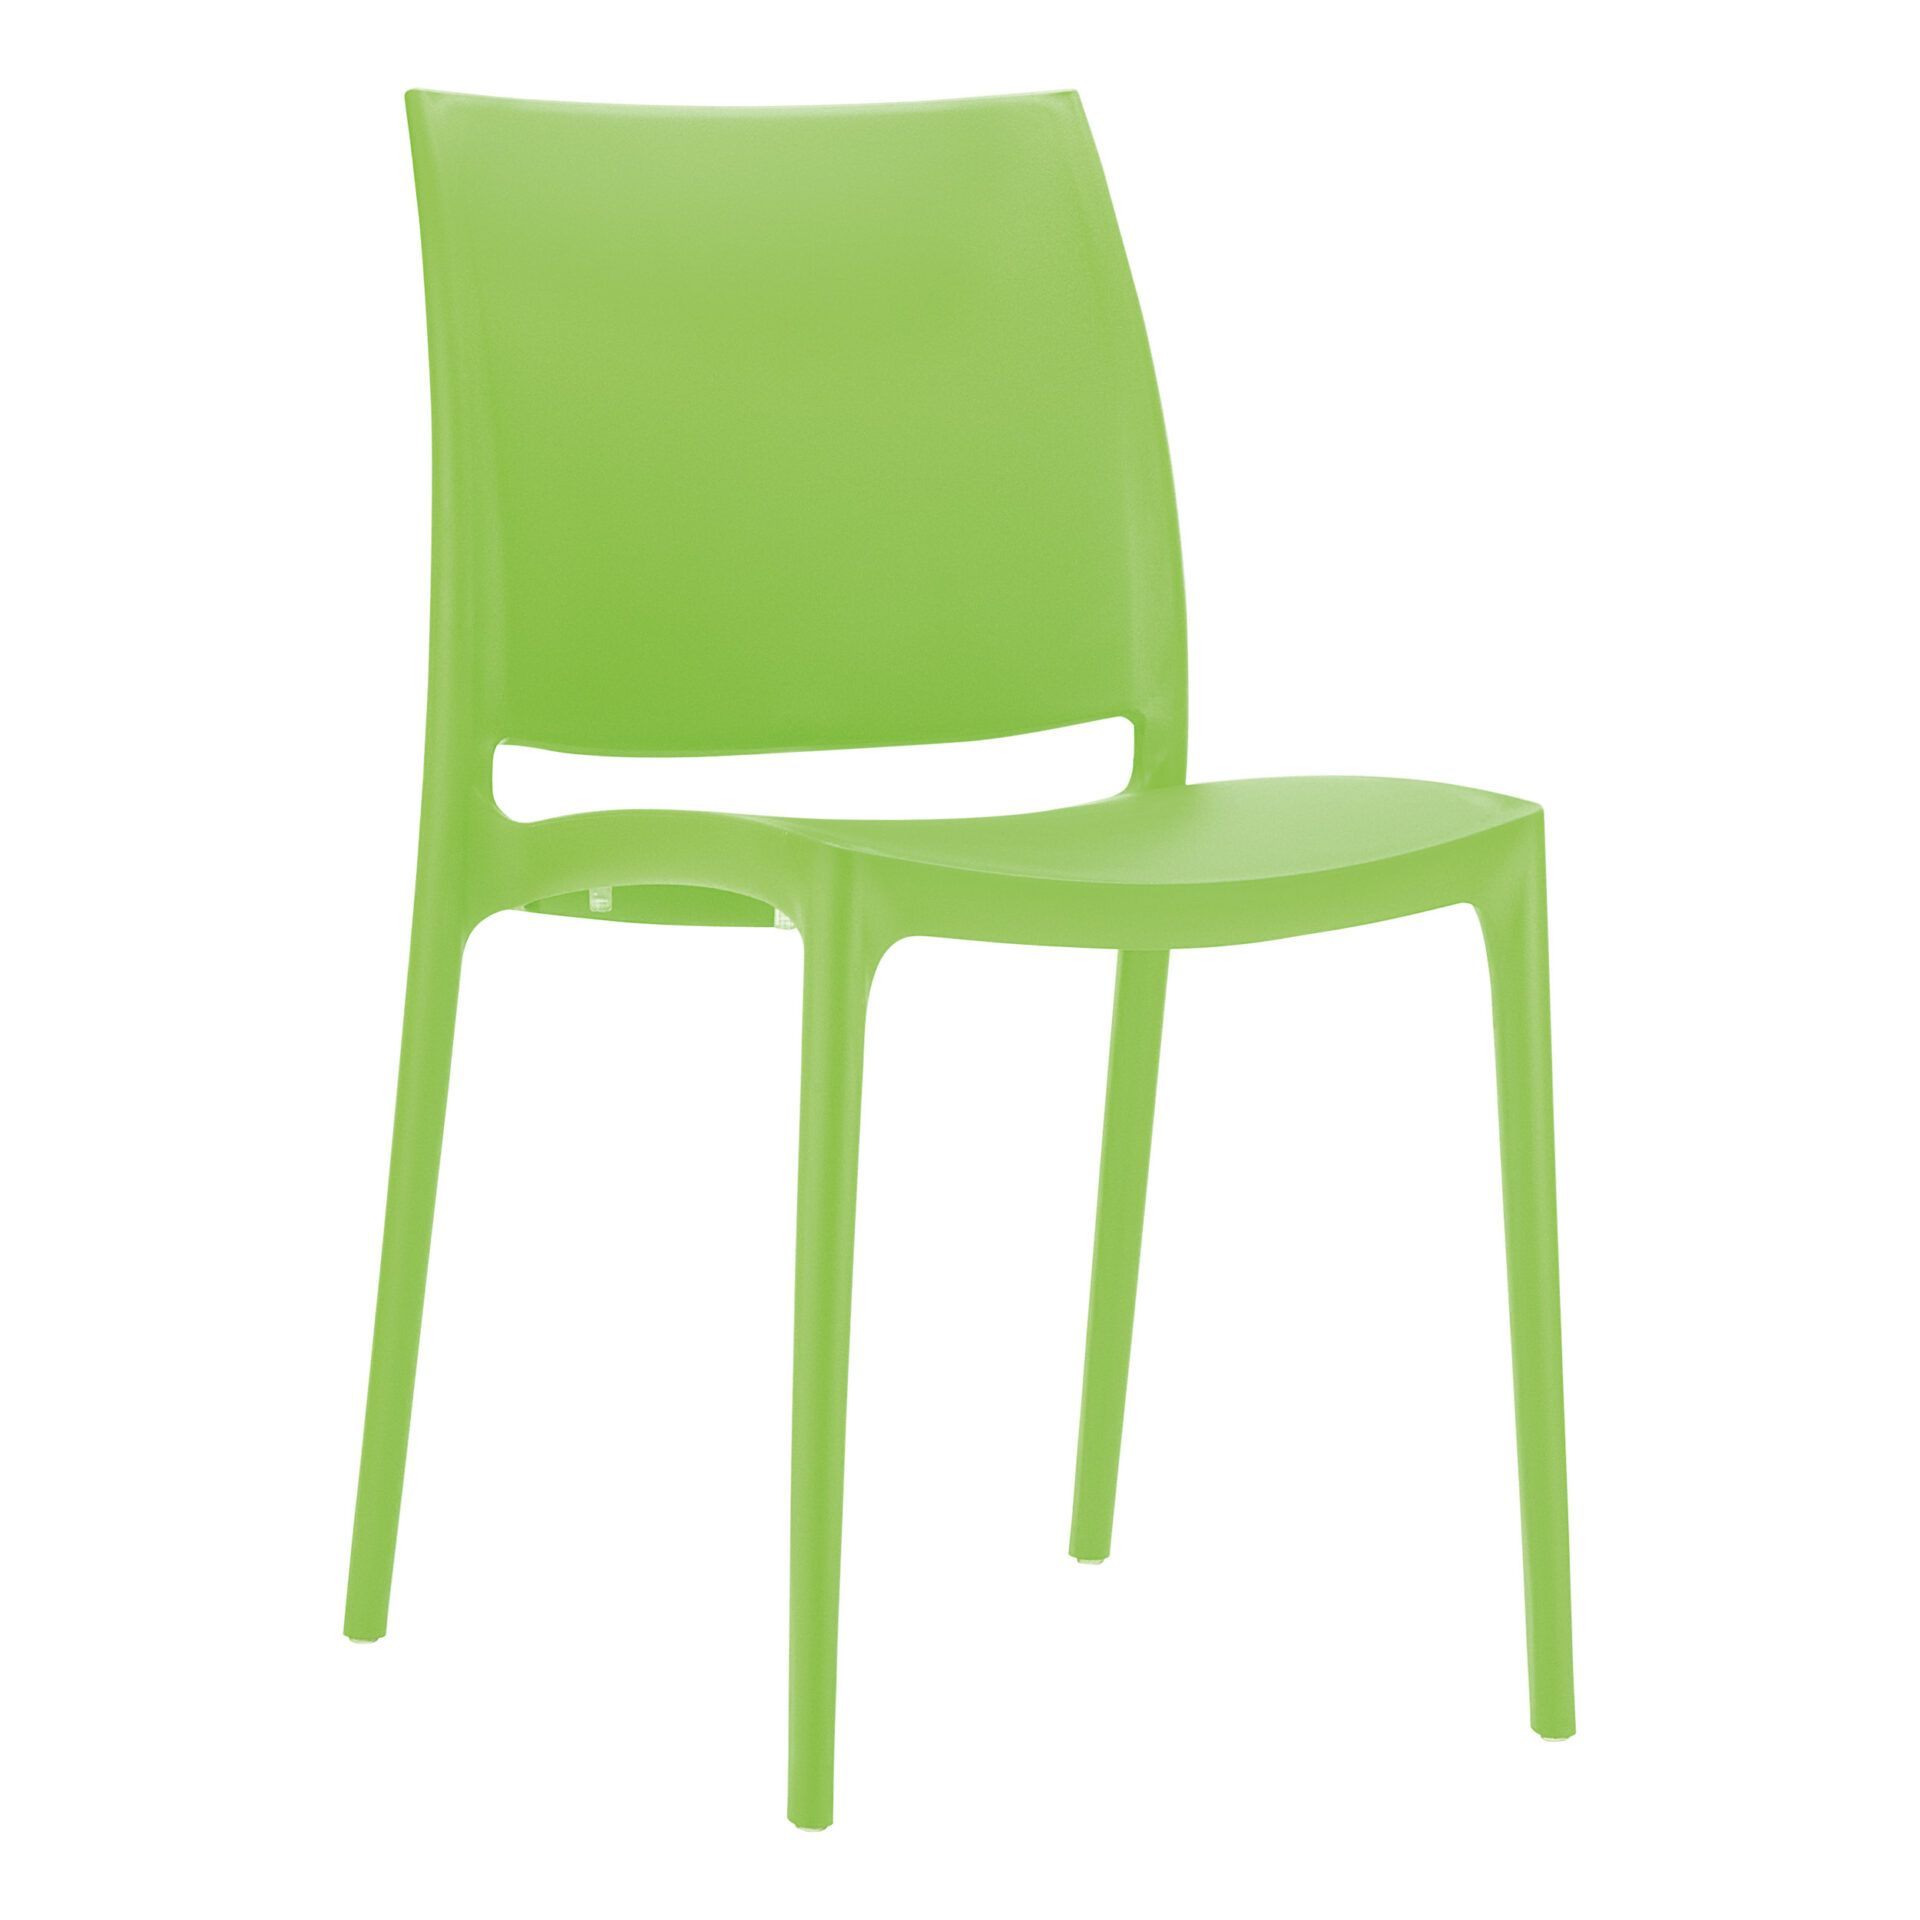 outdoor dining maya chair tropical green front side